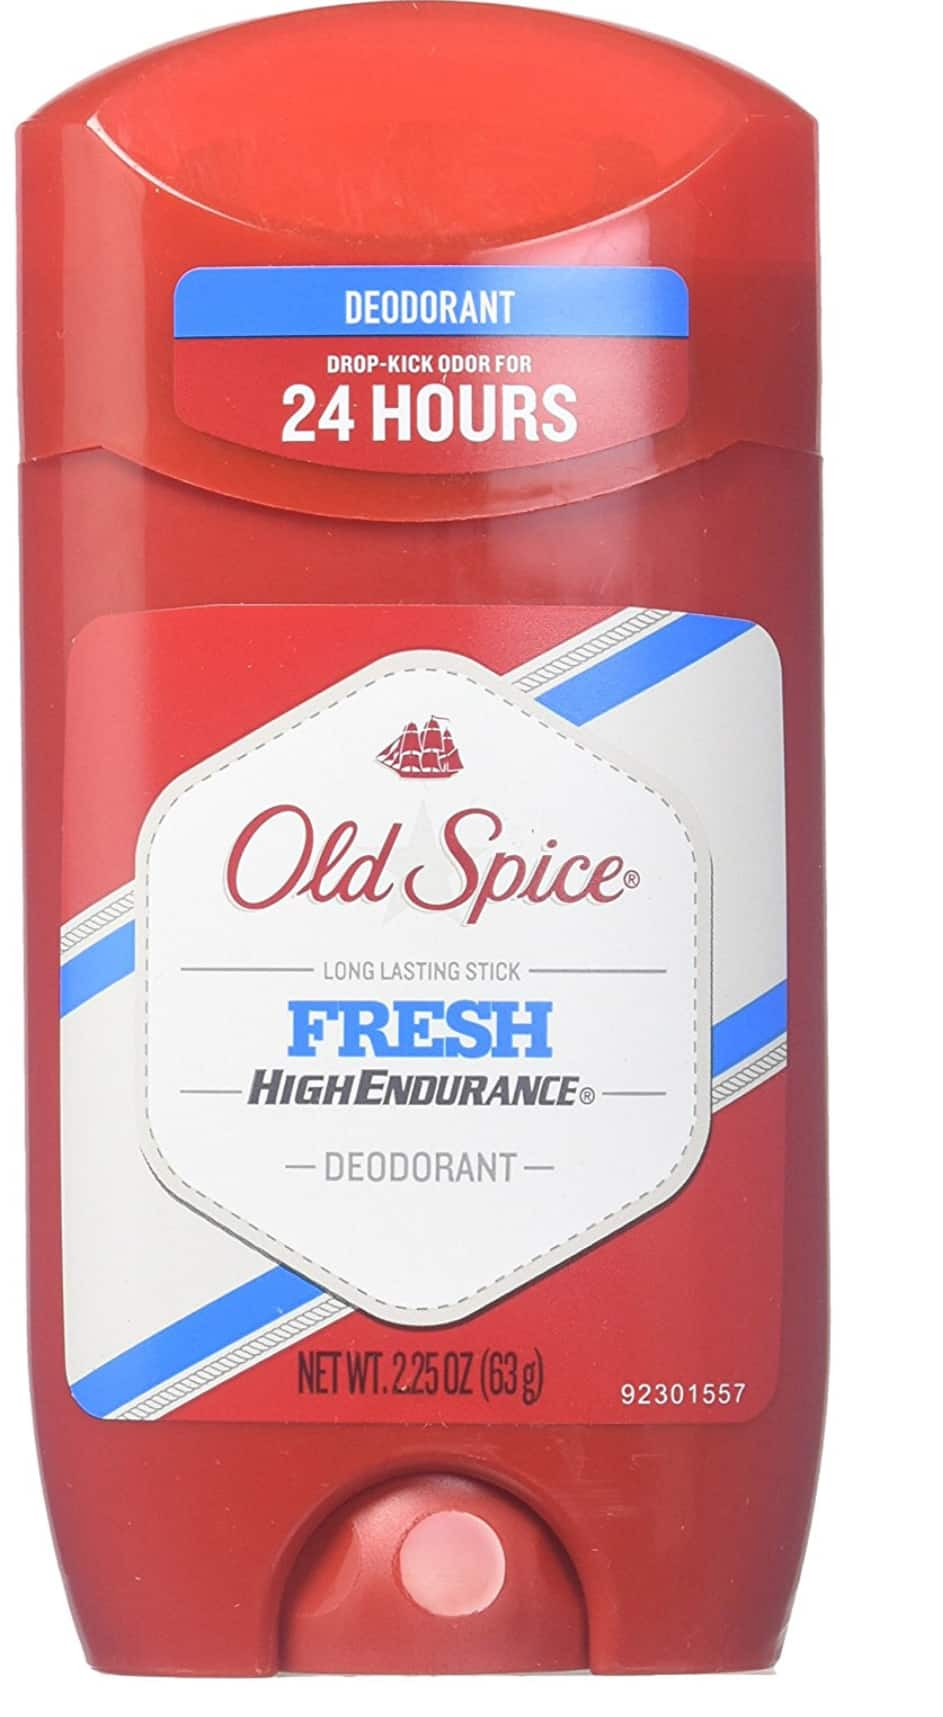 Old Spice High Endurance Deodorant Long Lasting Stick Fresh 2.25 oz (Pack of 12) for $21.46 at Amazon